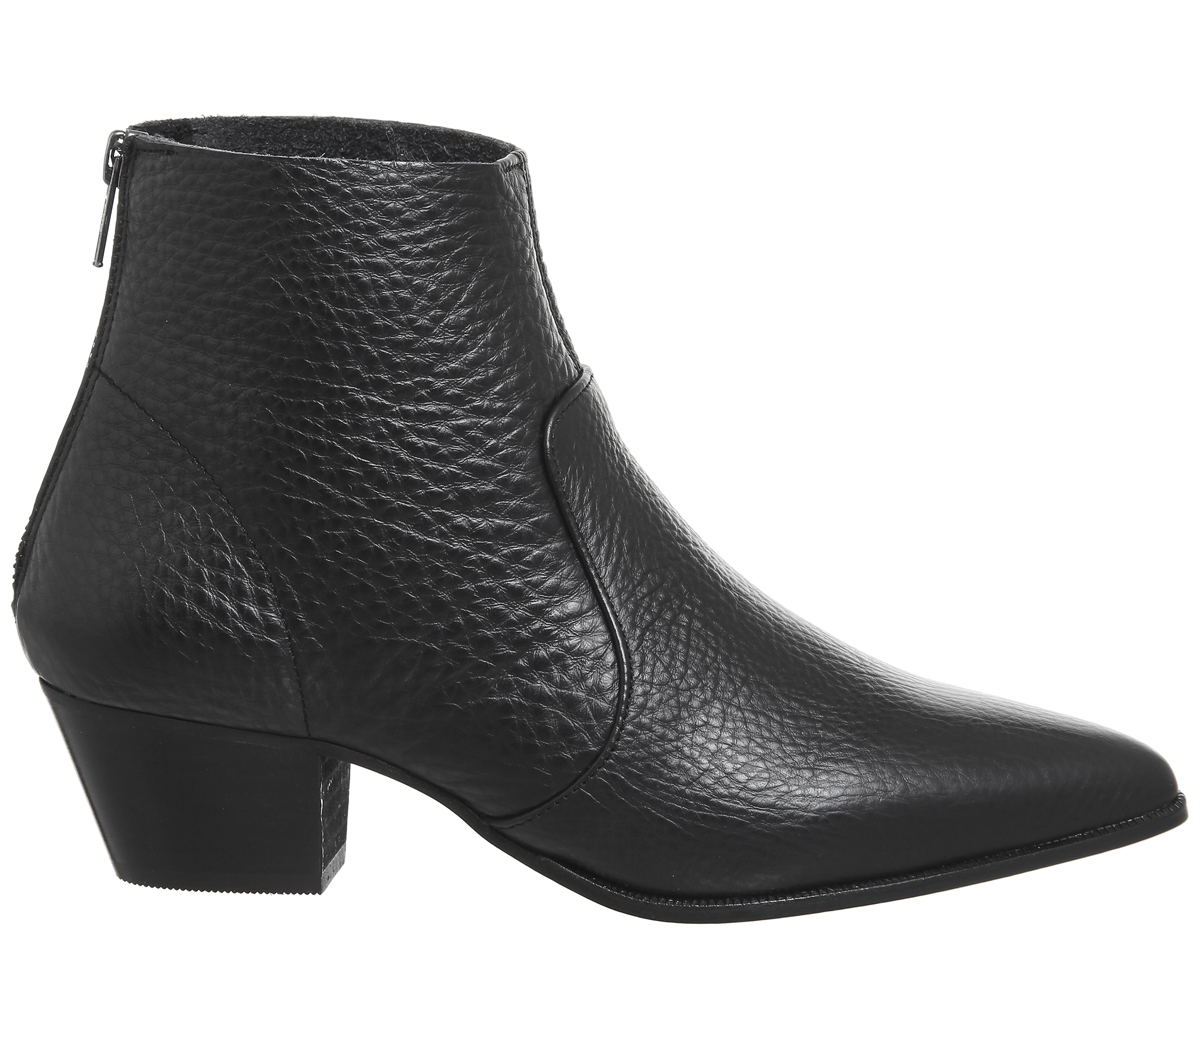 Damenschuhe Office Arrived Unlined Stiefel Western Stiefel BLACK LEATHER Stiefel Unlined 6cb4d1